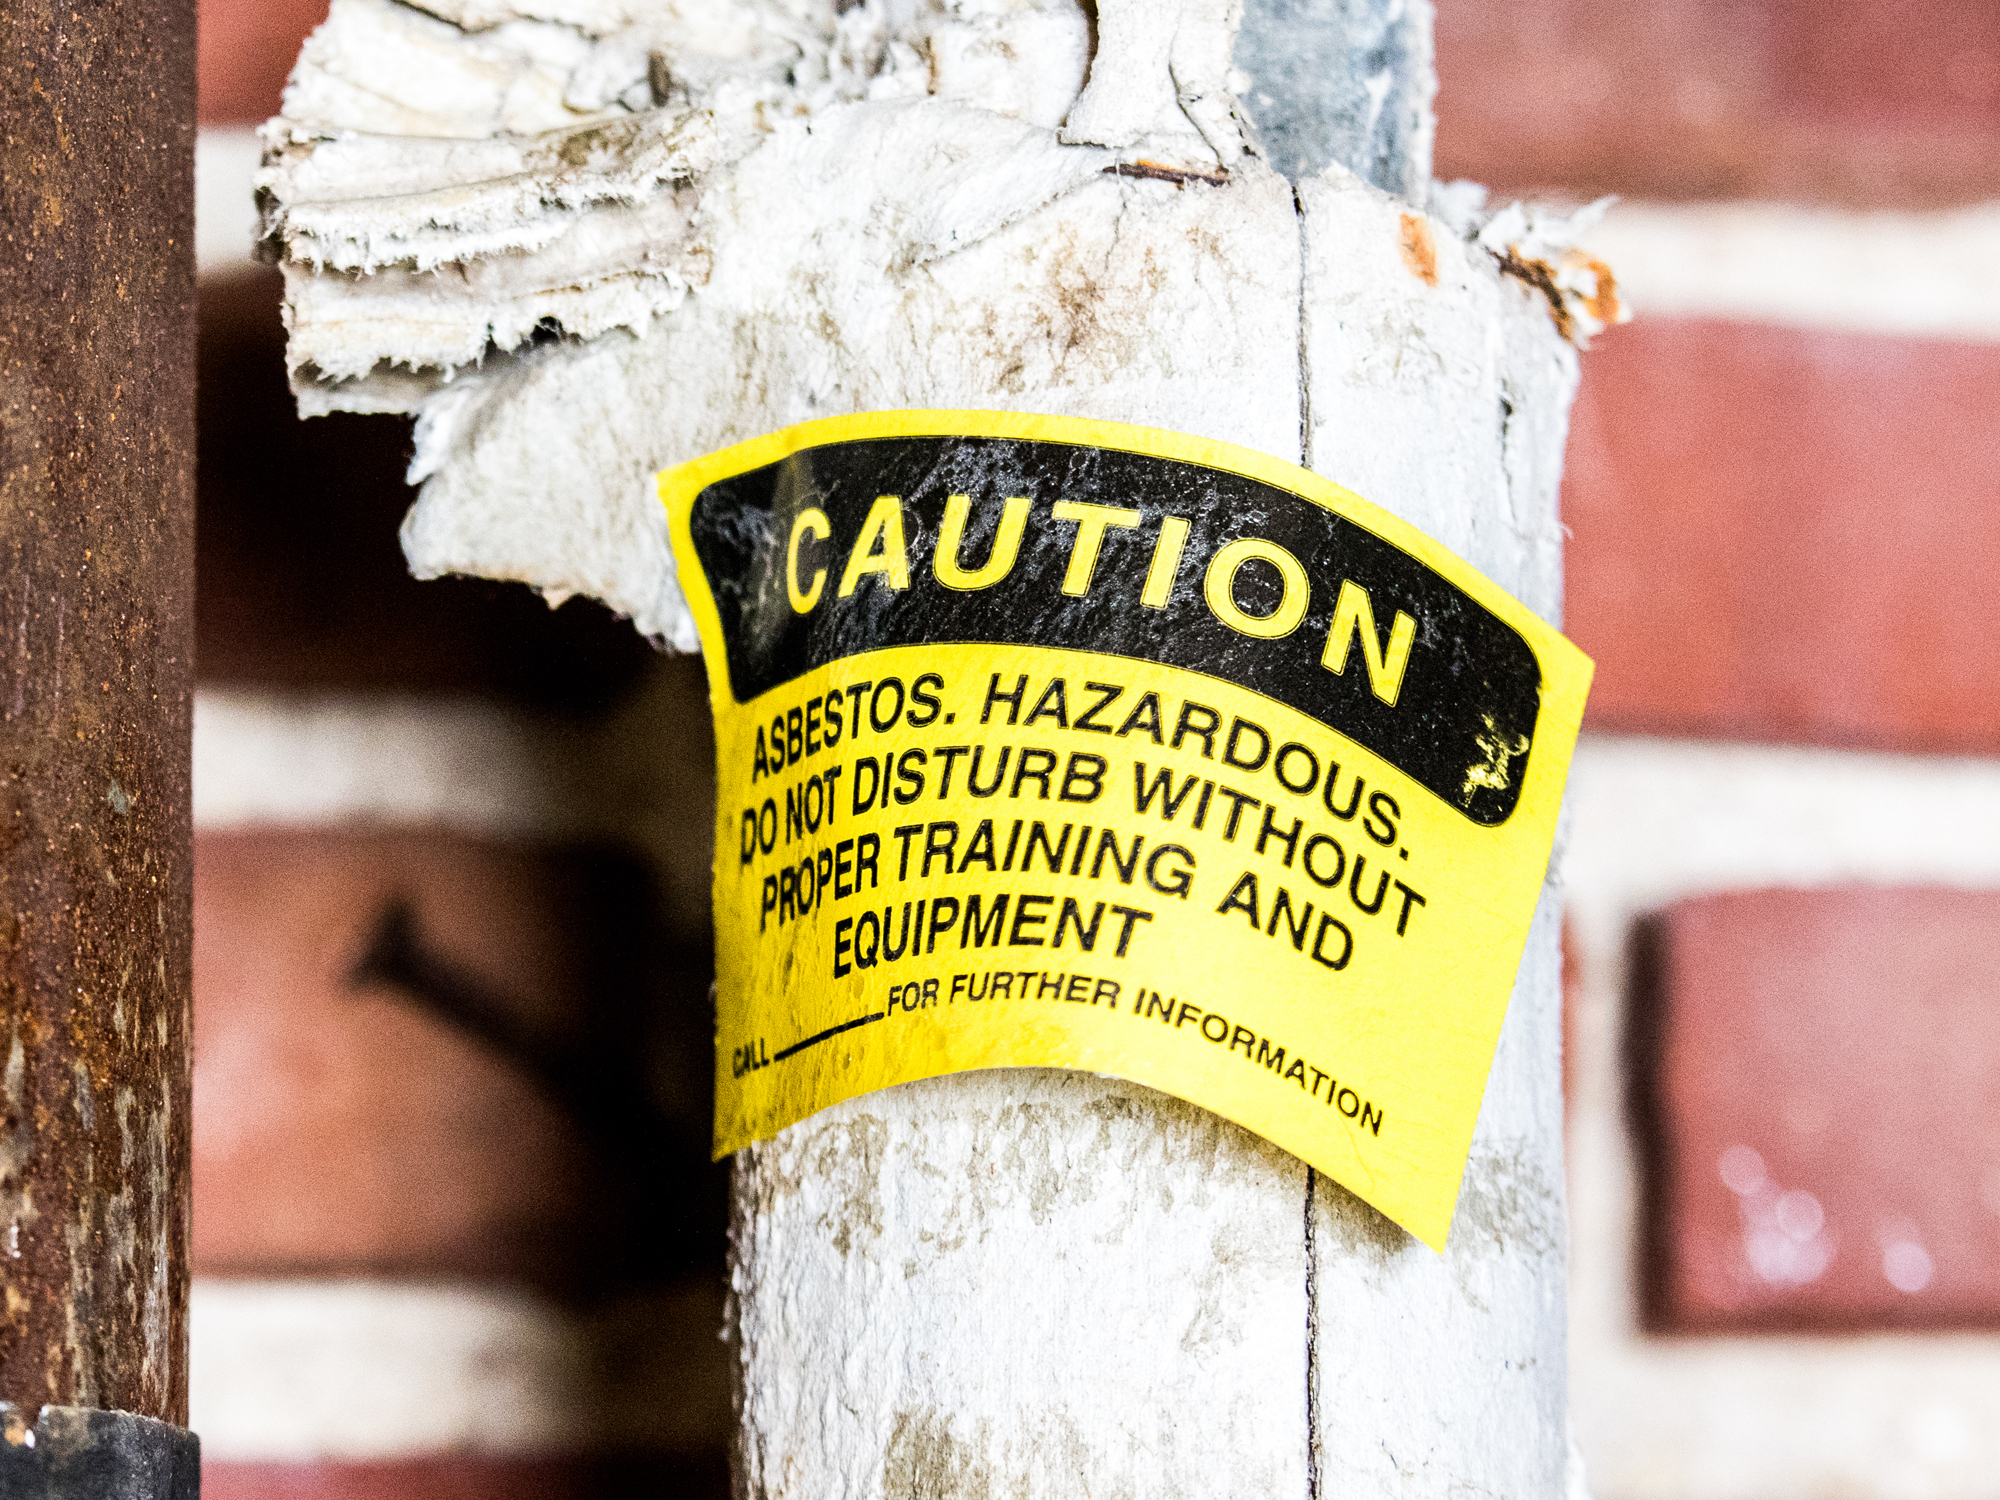 Asbestos: It's back and as dangerous as ever